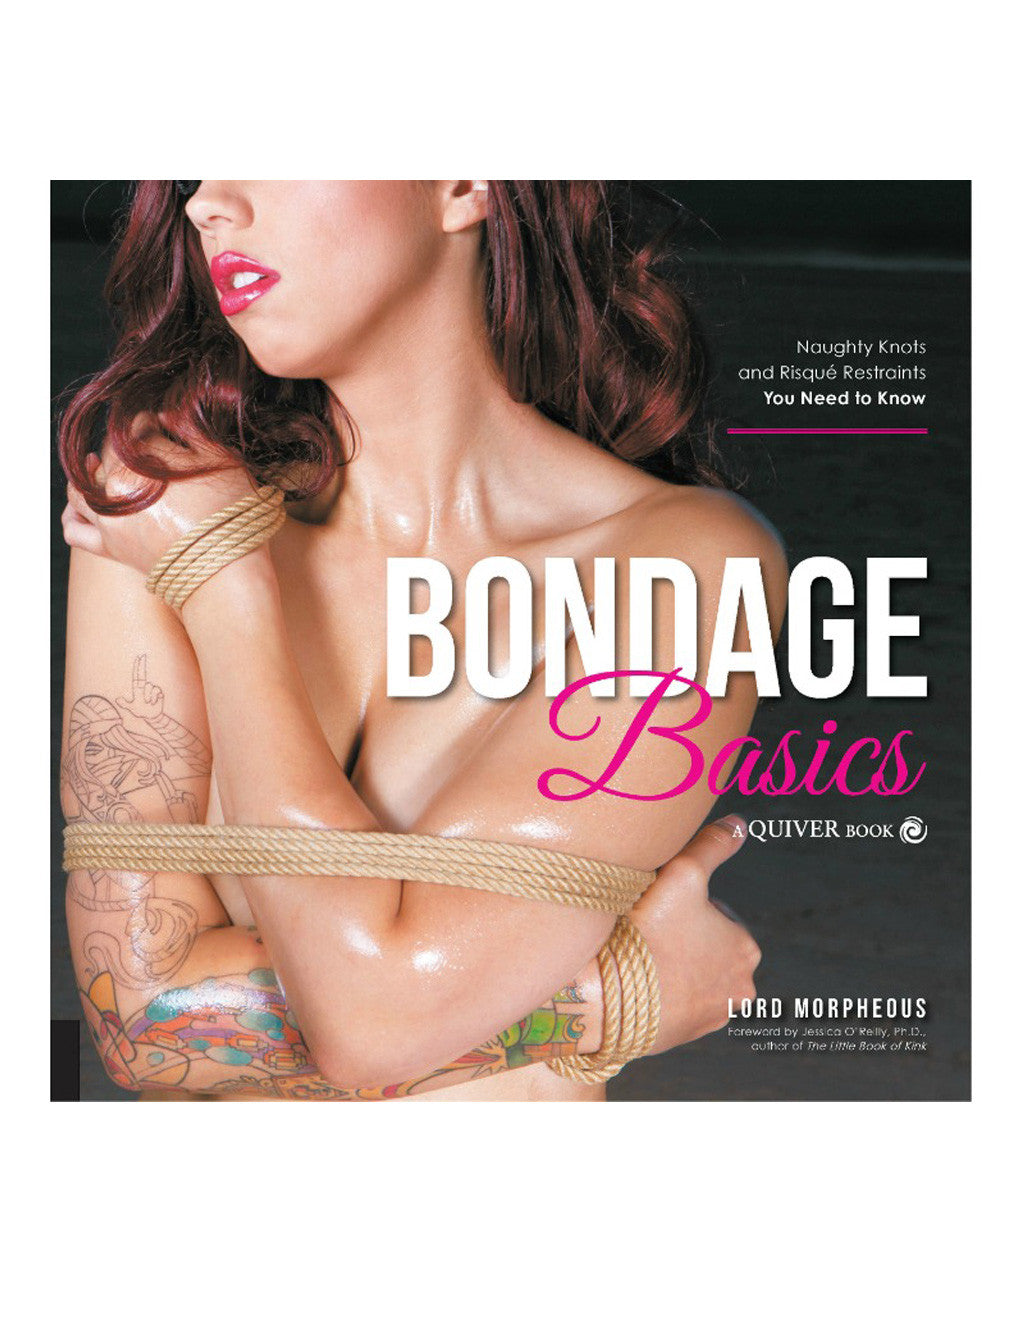 Bondage Basics by Lord Morpheous - Media - Books